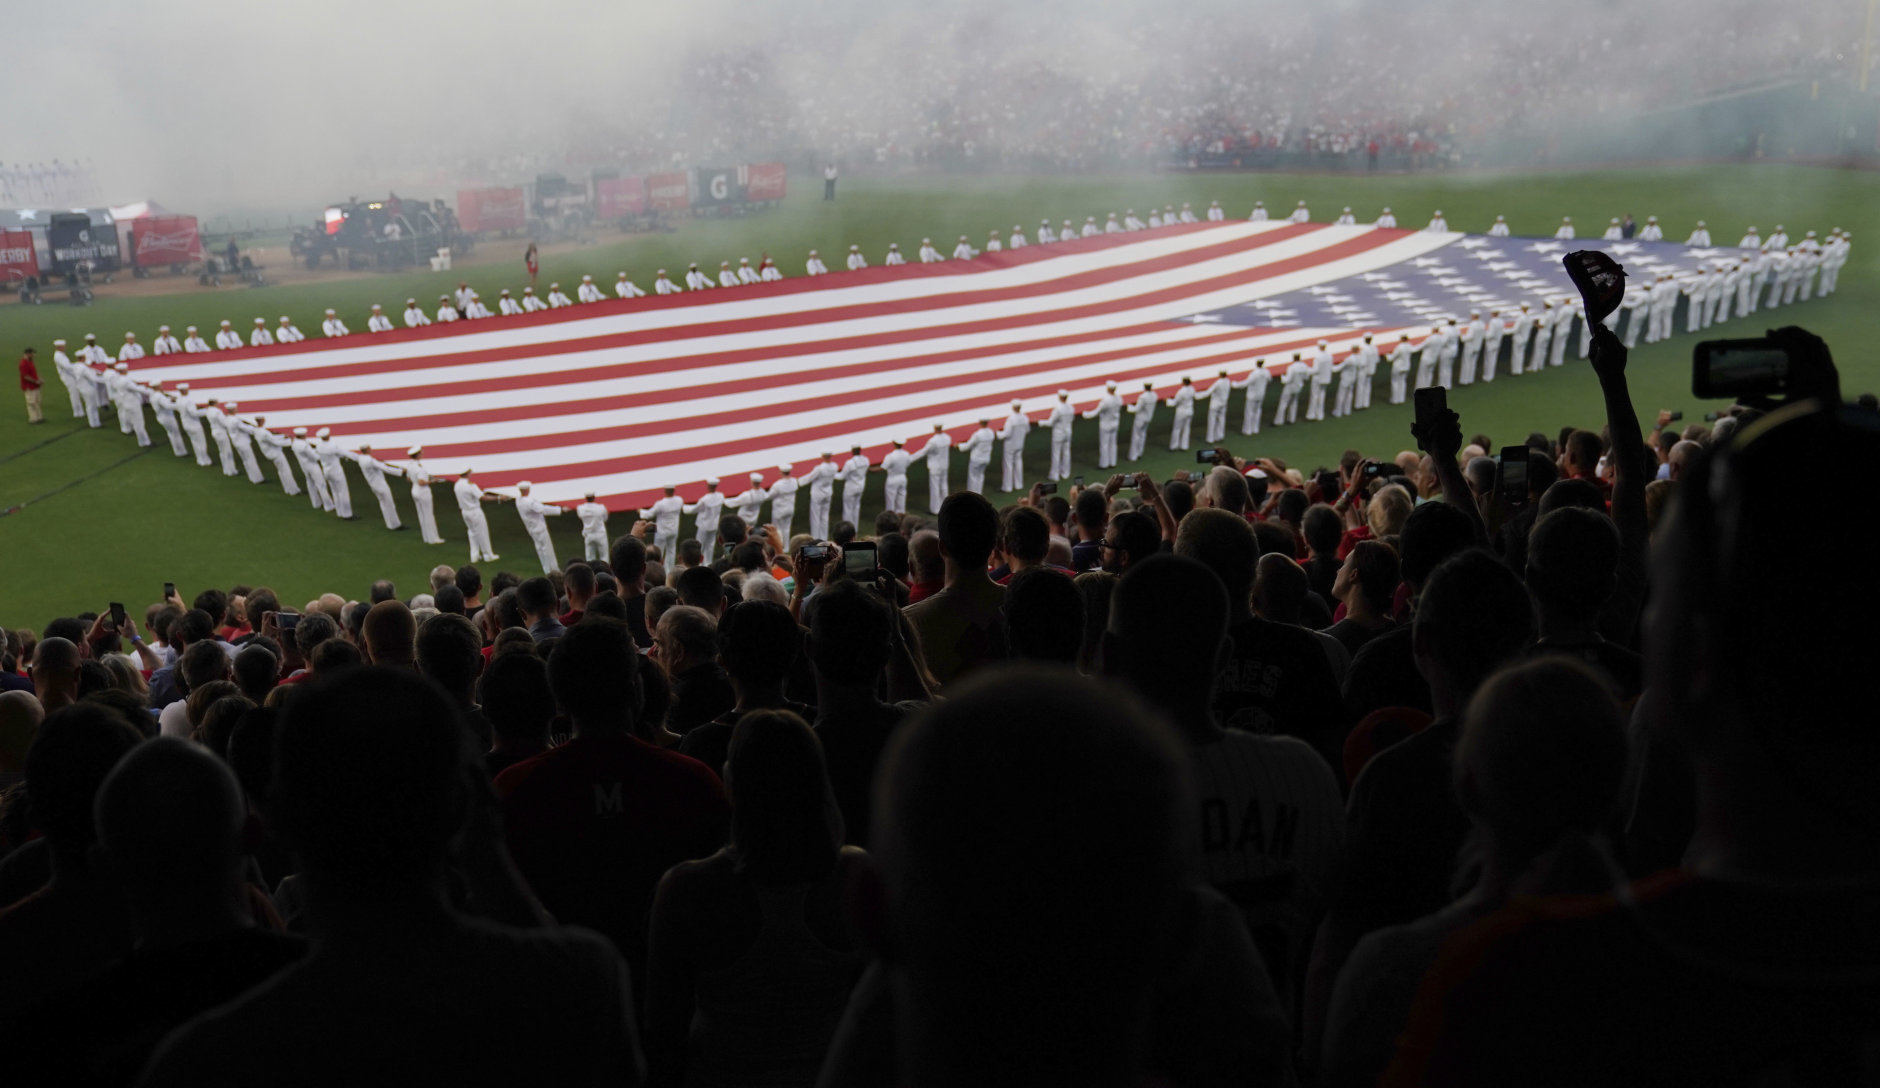 U.S. Navy sailors unfurl a flag before the MLB Home Run Derby, at Nationals Park, Monday, July 16, 2018 in Washington. The 89th MLB baseball All-Star Game will be played Tuesday. (AP Photo/Carolyn Kaster)